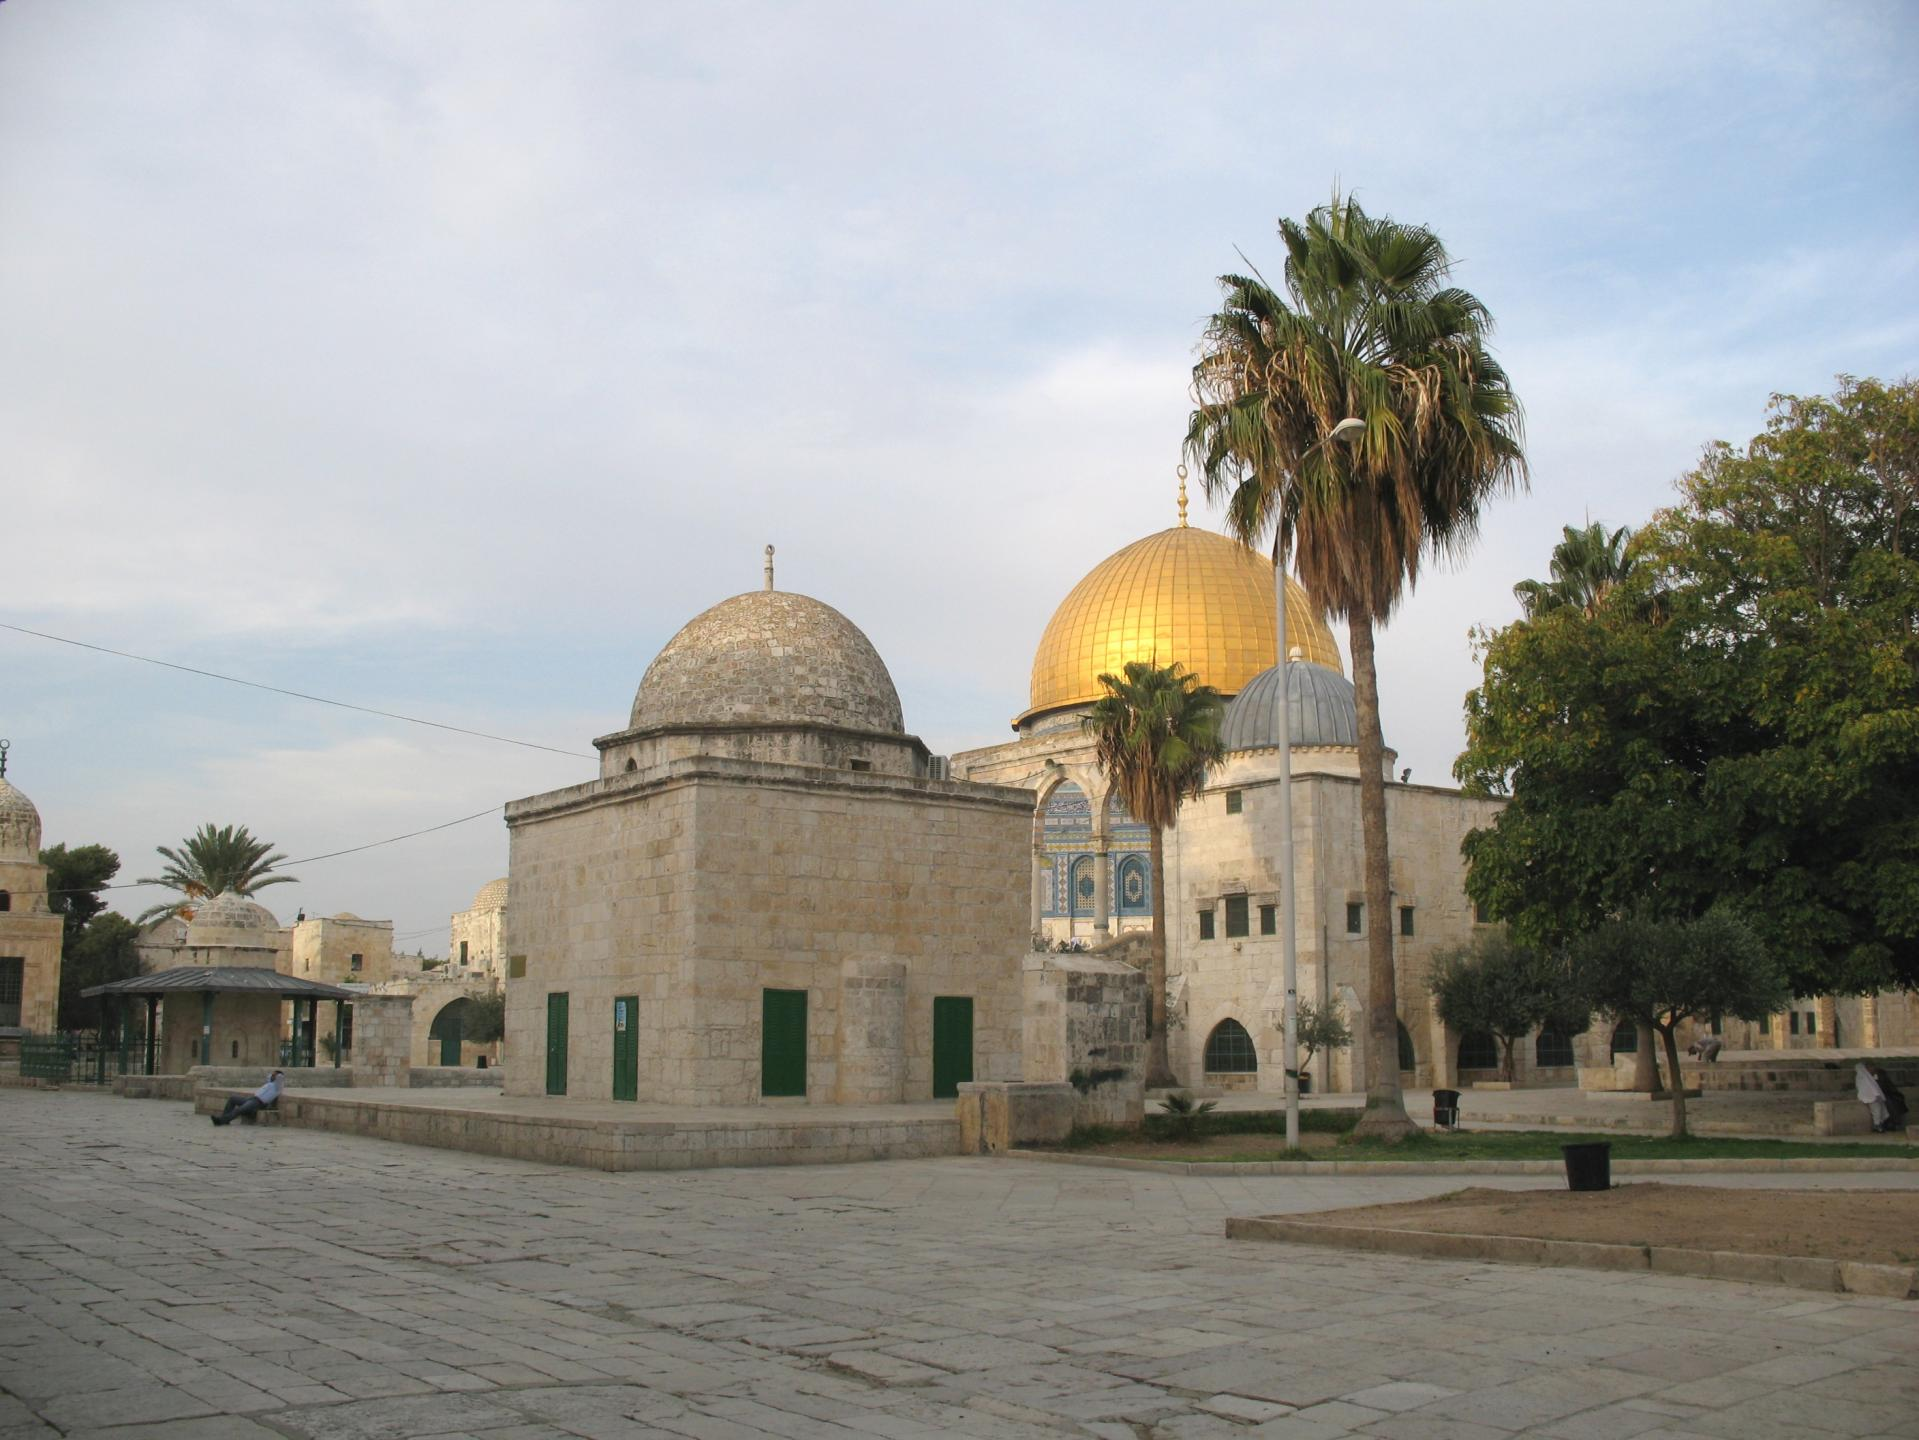 Old city and alaqsa mosque in jerusalem palestine